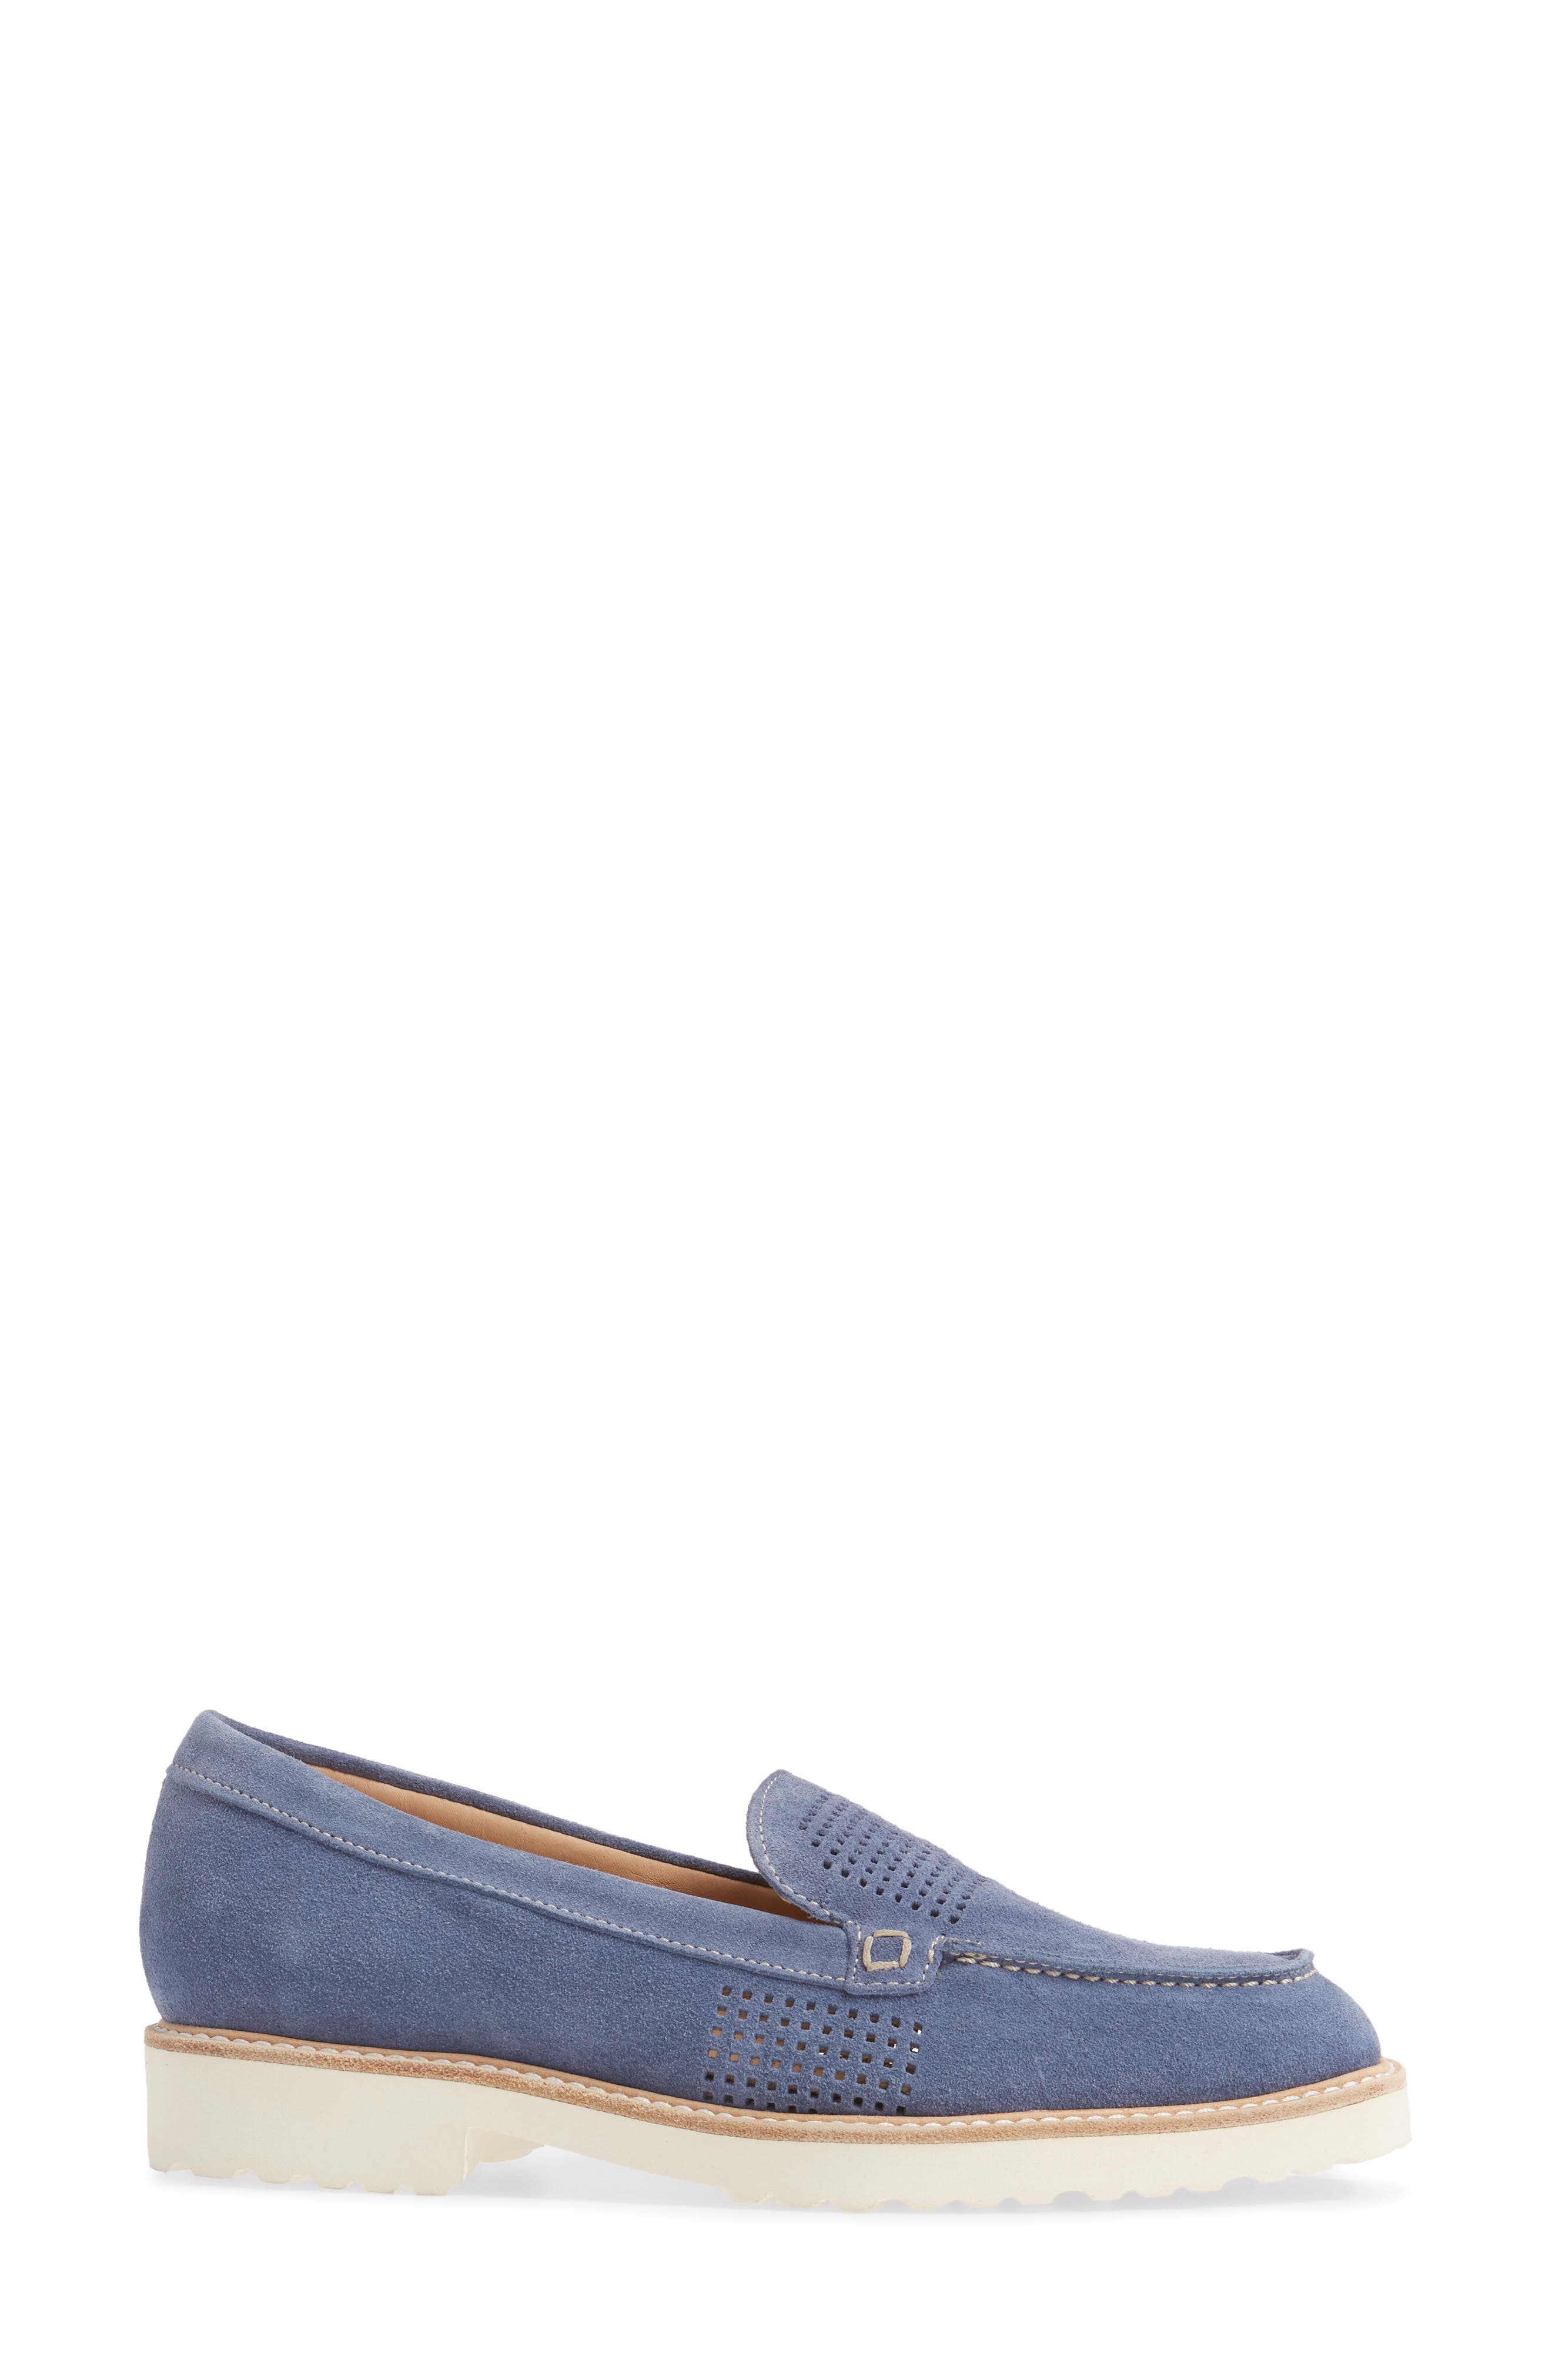 Alternate Image 3  - Ron White Wazzy Loafer (Women)